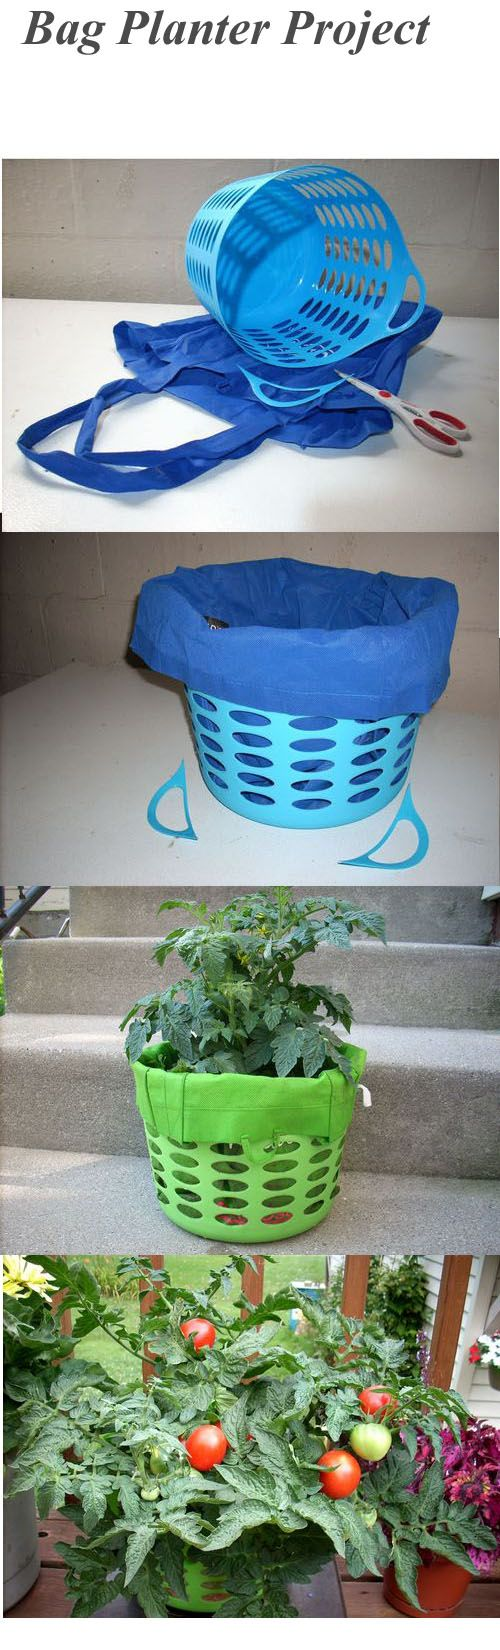 Patio Tomato Plant In A Clothe Bag From The Grocery Store Set Inside A  Accessory Basket